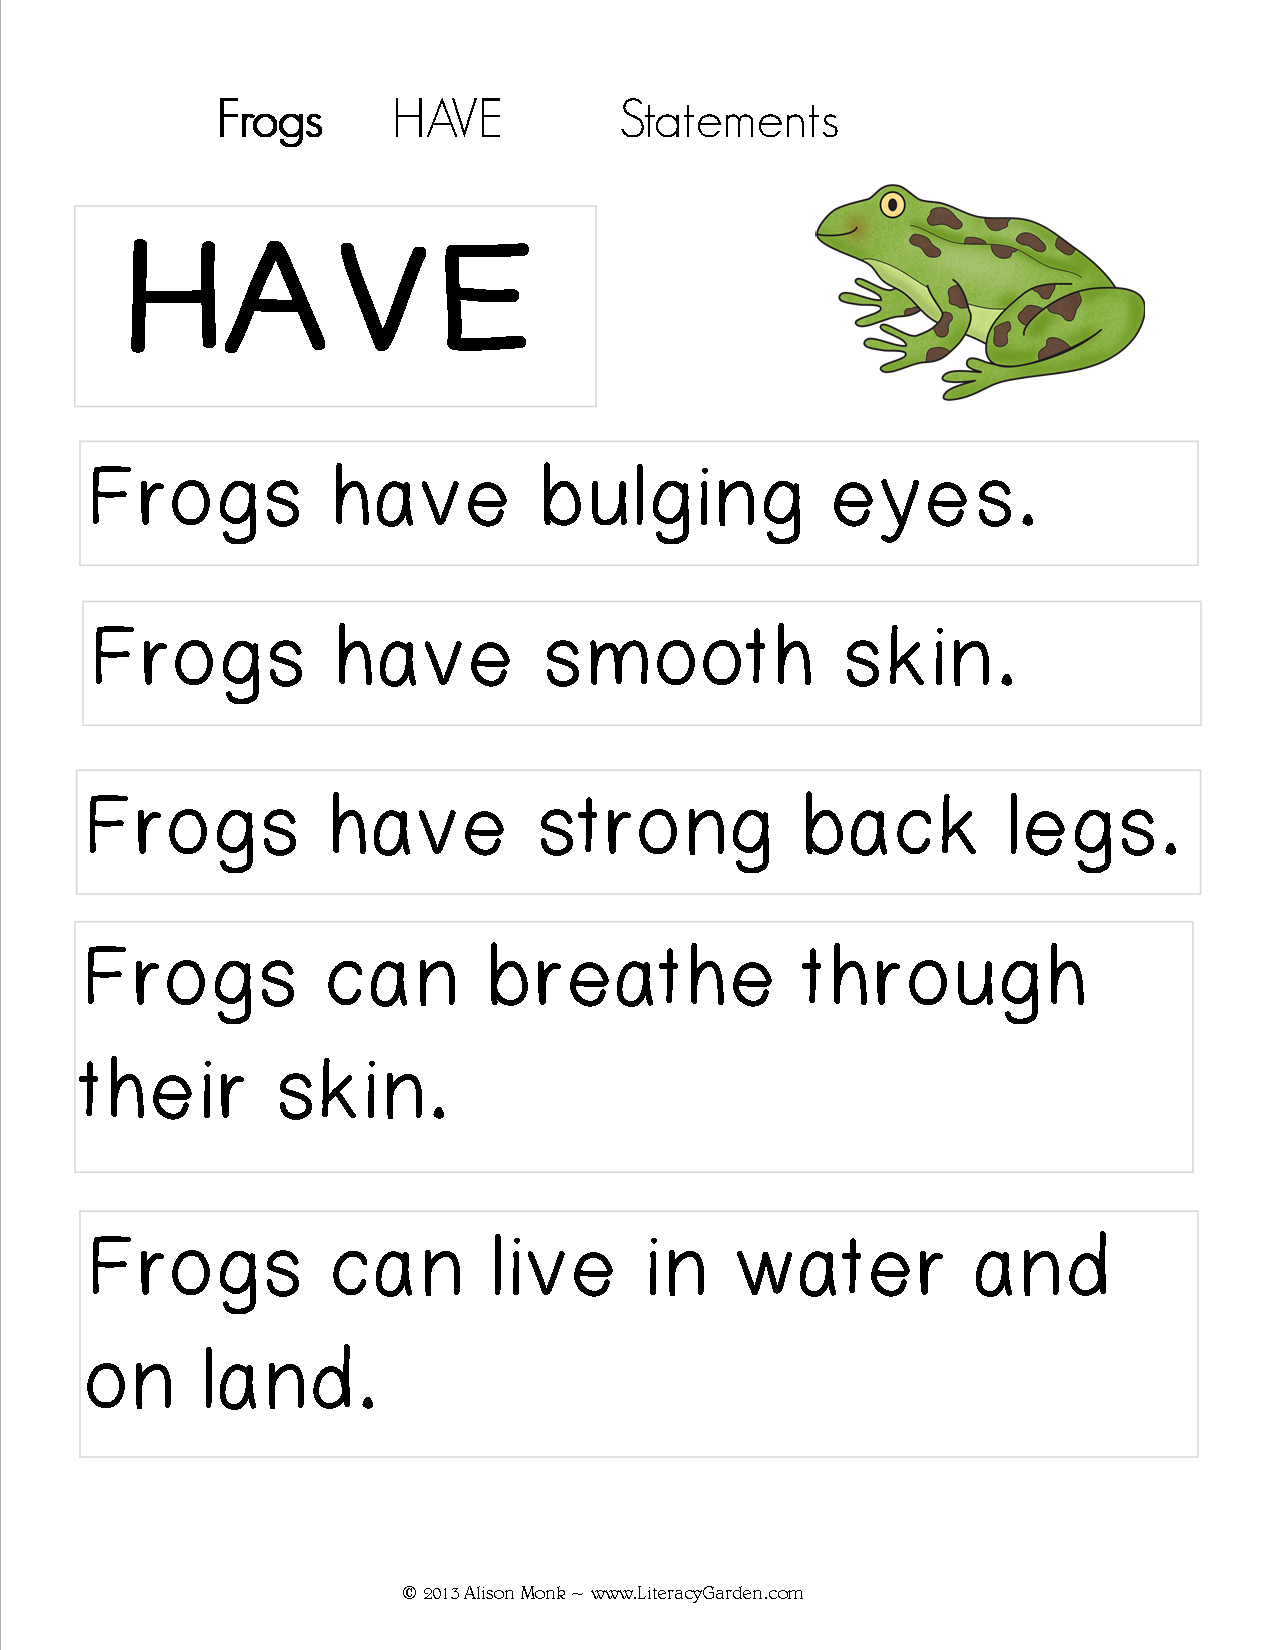 Frogshave